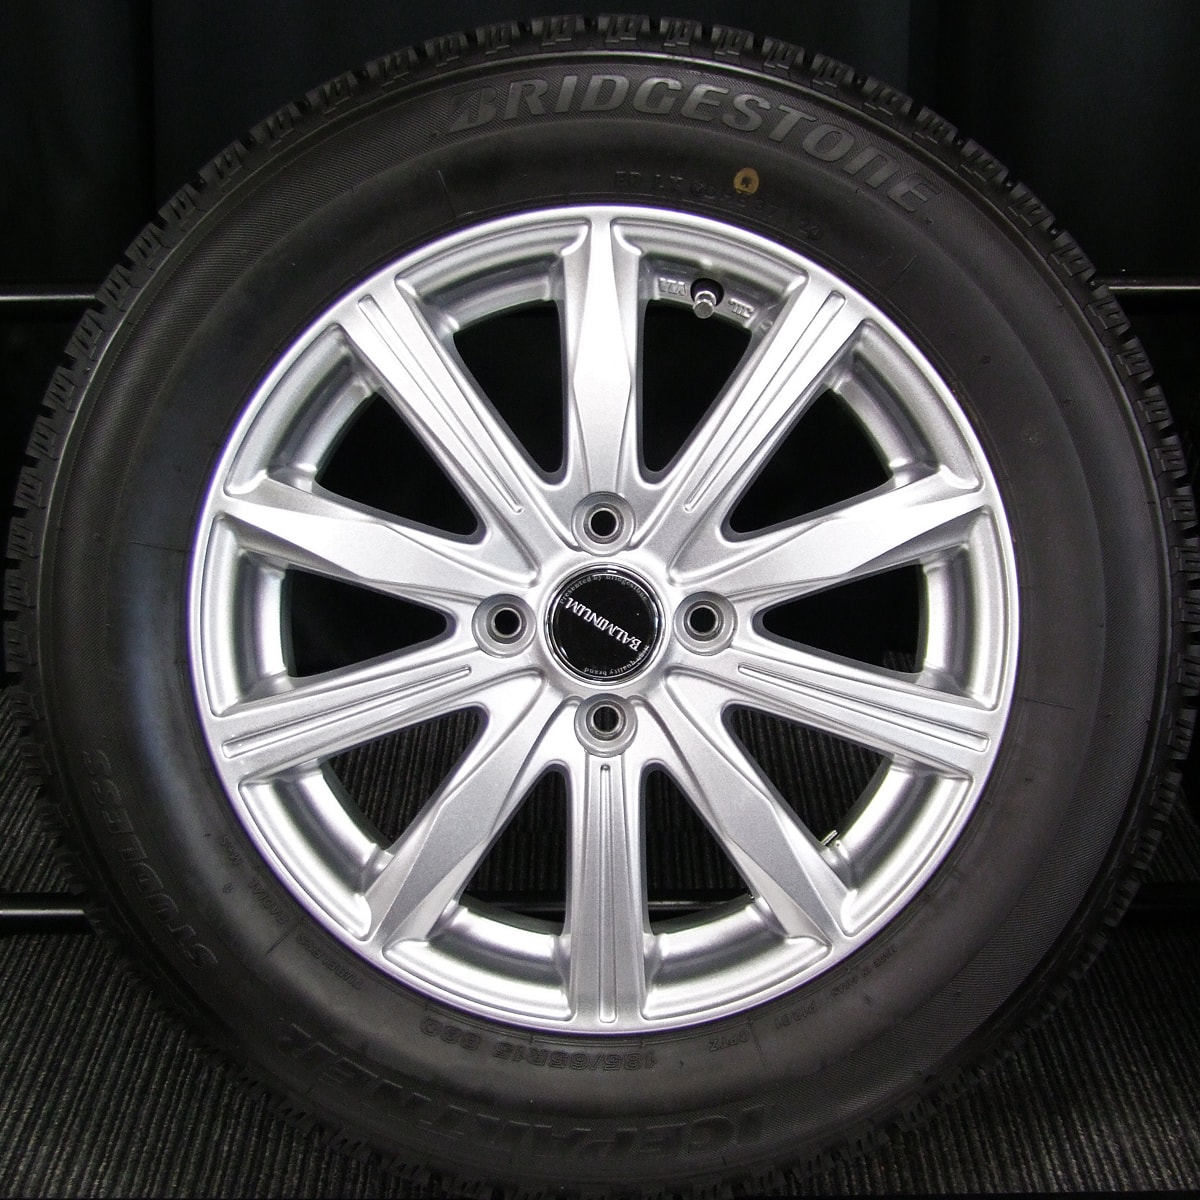 BRIDGESTONE BALMINUM KR10 シルバー BRIDGESTONE ICE PARTNER 185/65R15 4本SET